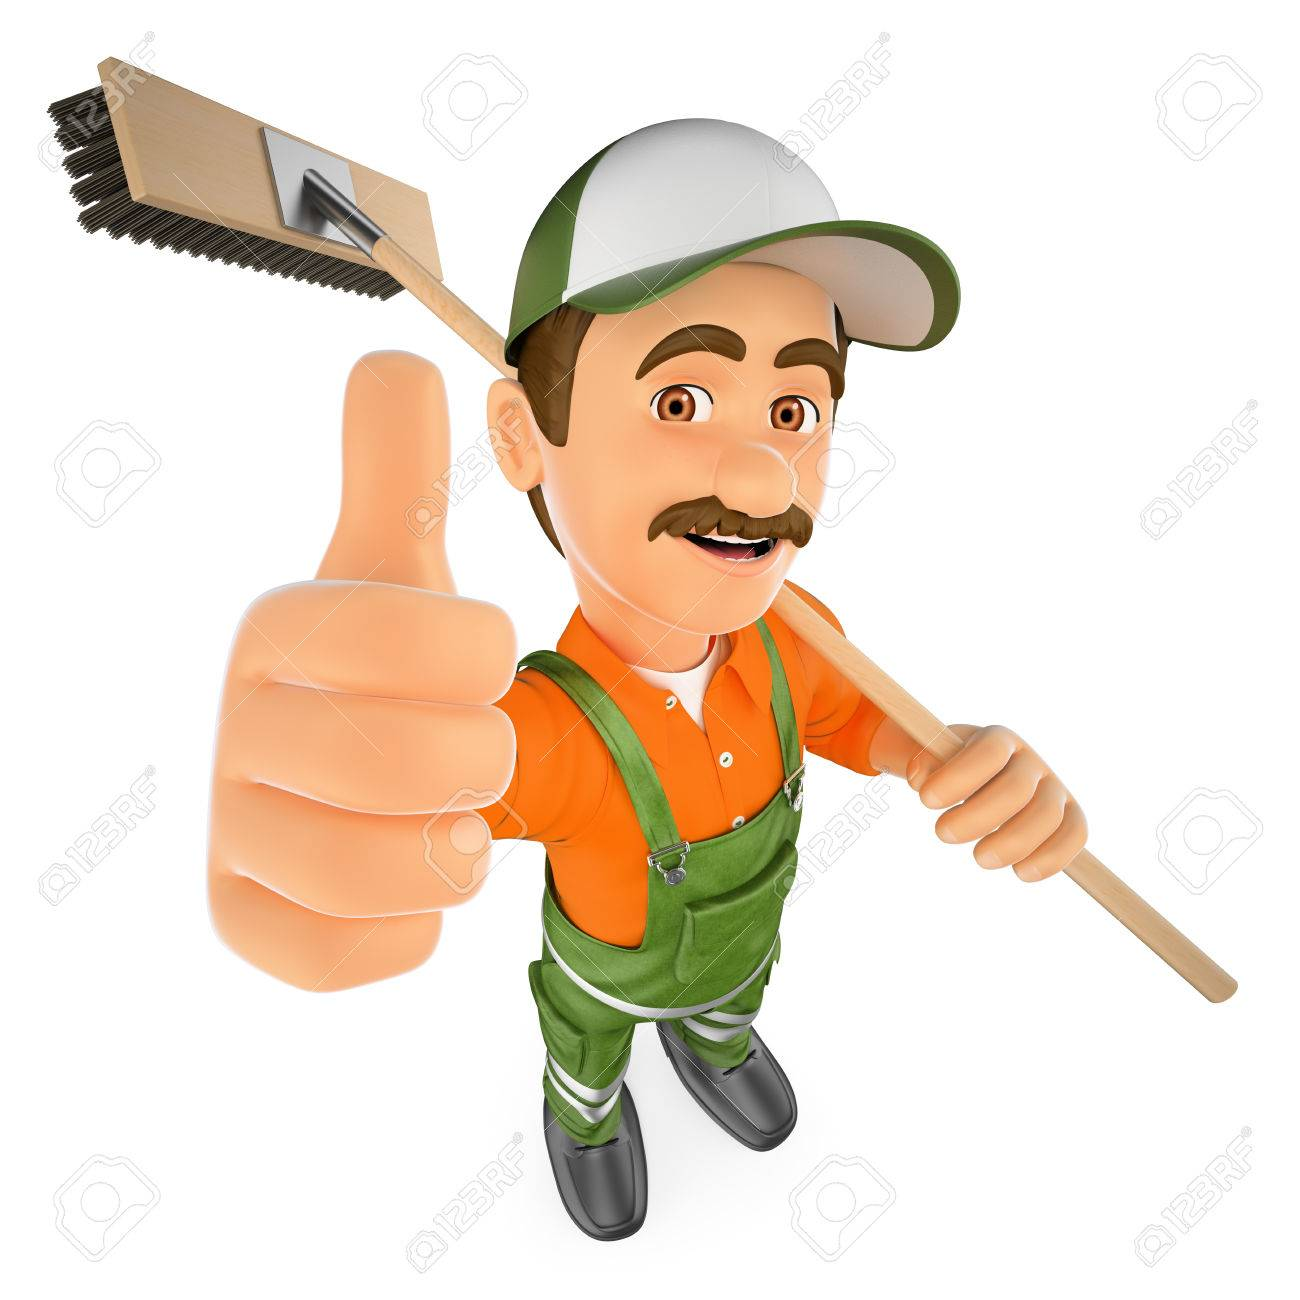 3d Working People Illustration Street Sweeper With Thumb Up 1300x1300